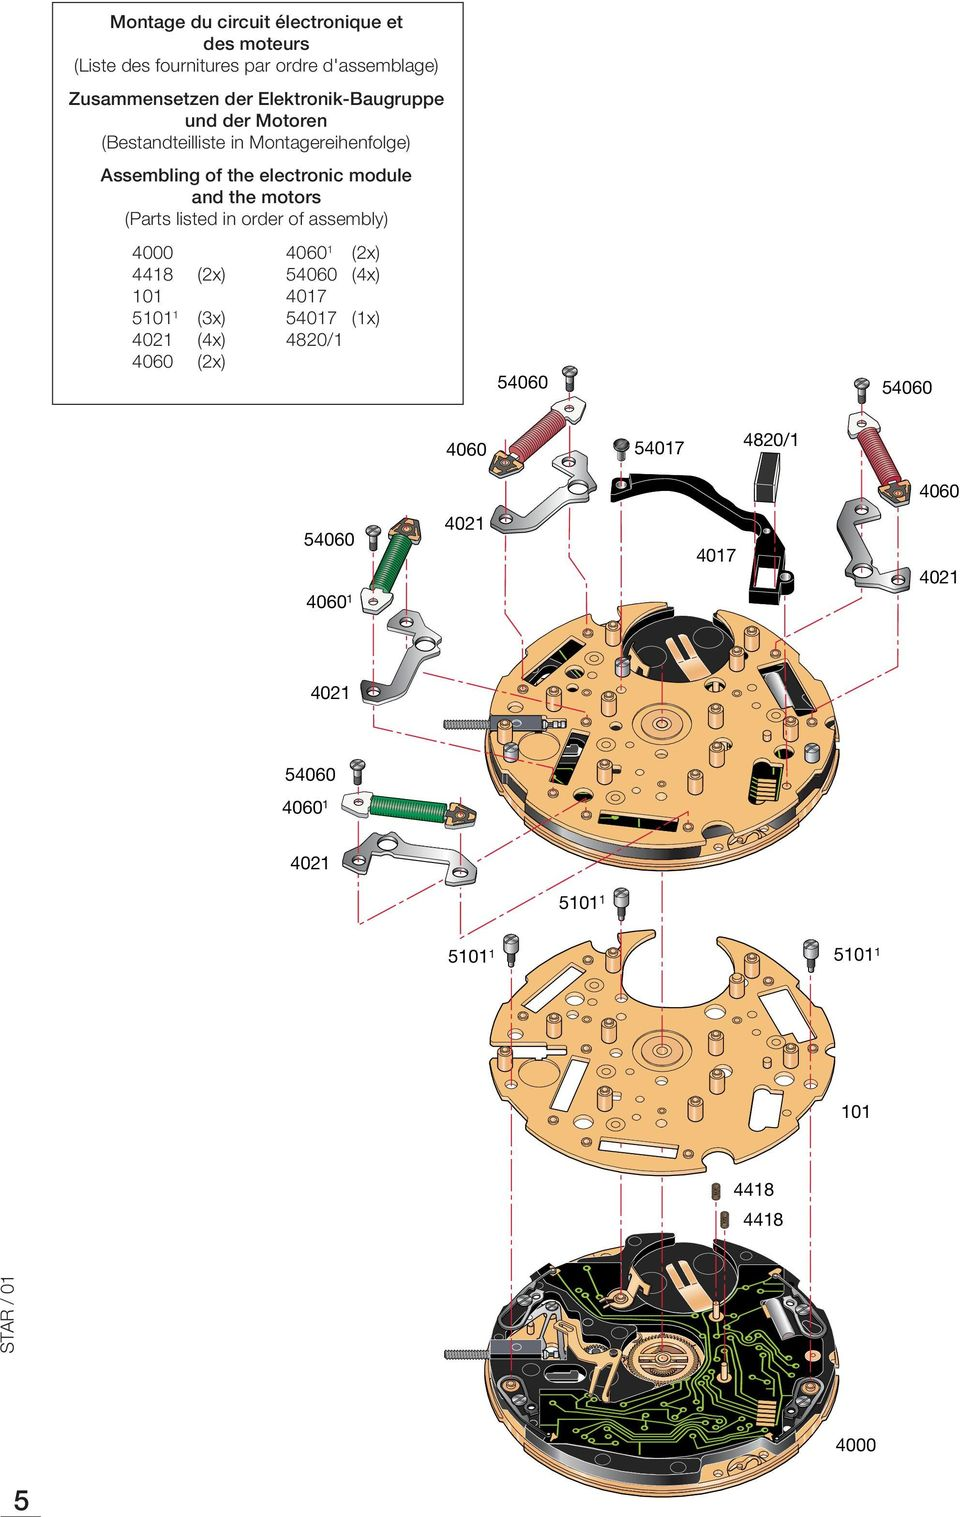 ssembling of the electronic module and the motors (Parts listed in order of assembly) 00 0 (x)